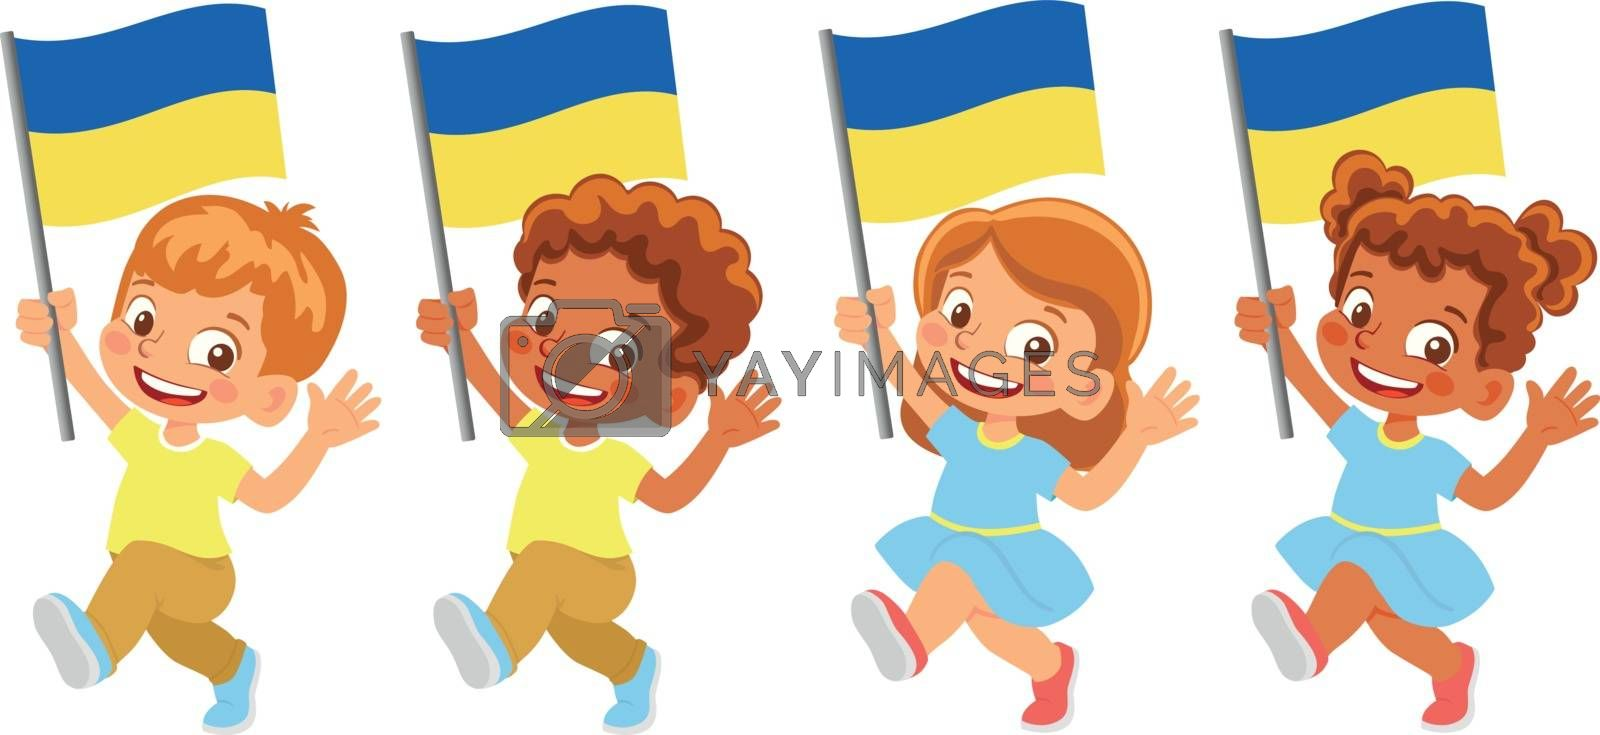 Ukraine flag in hand set by Visual-Content